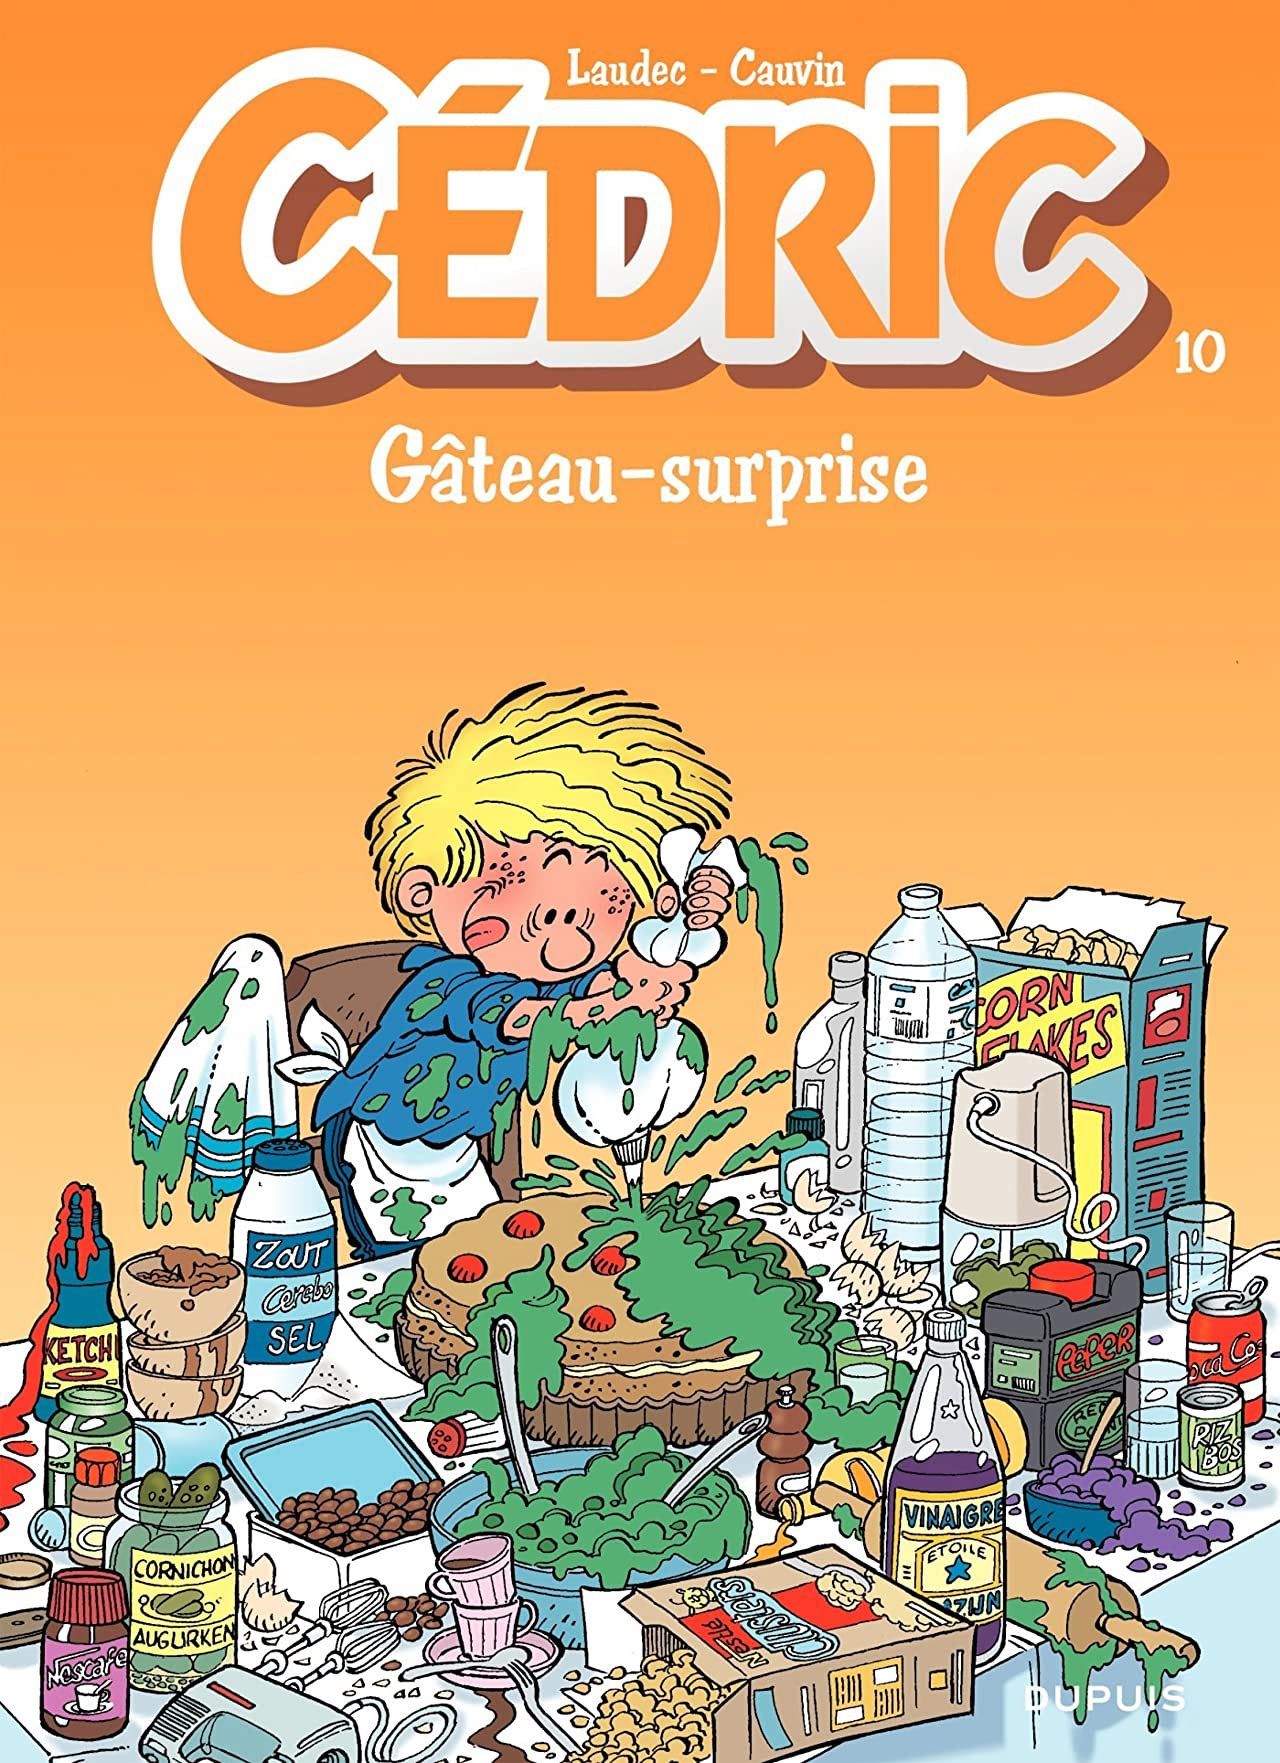 Cédric Vol. 10: GATEAU SURPRISE